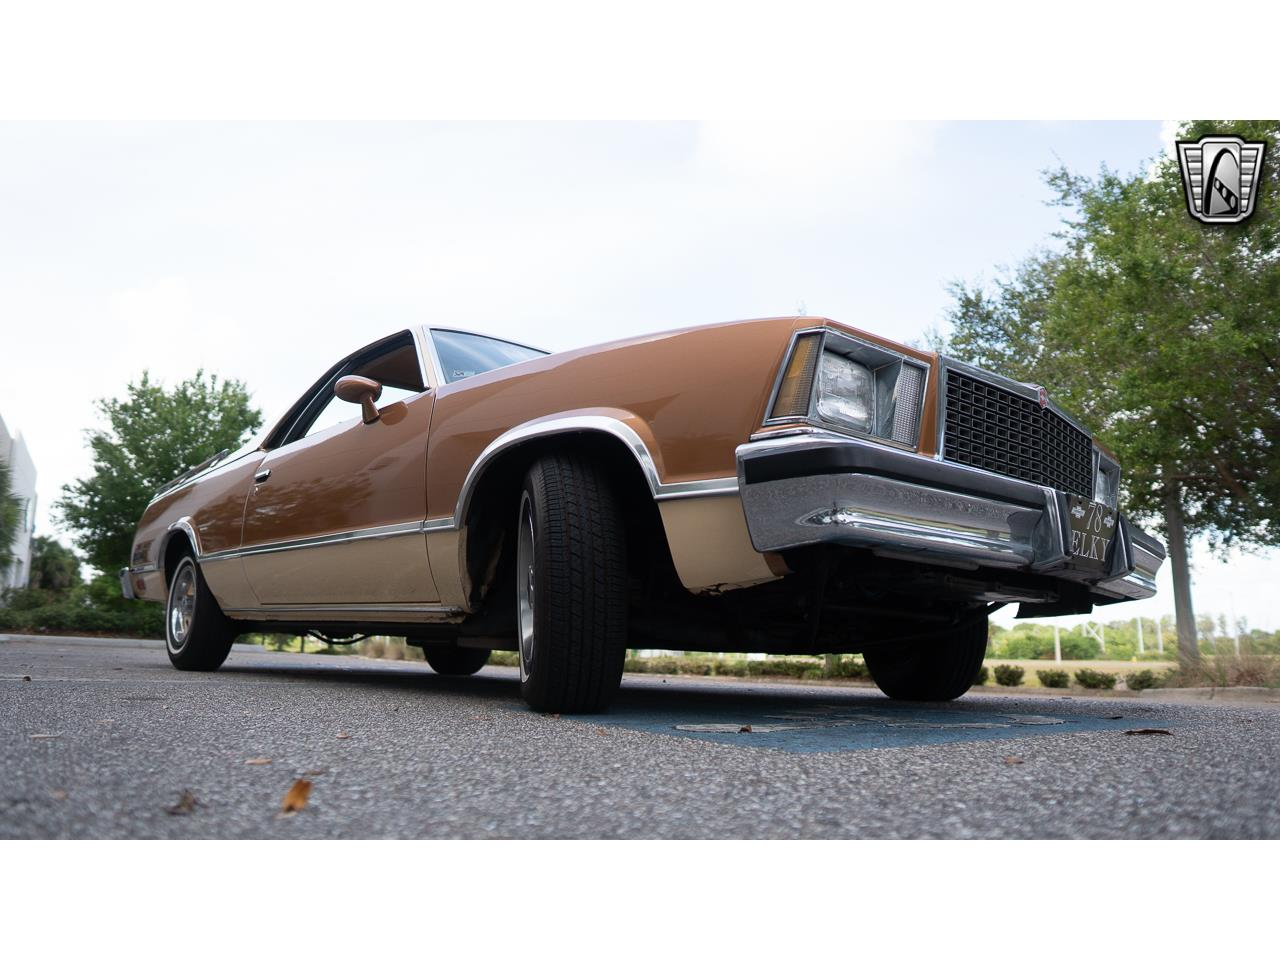 1978 Chevrolet El Camino (CC-1363039) for sale in O'Fallon, Illinois